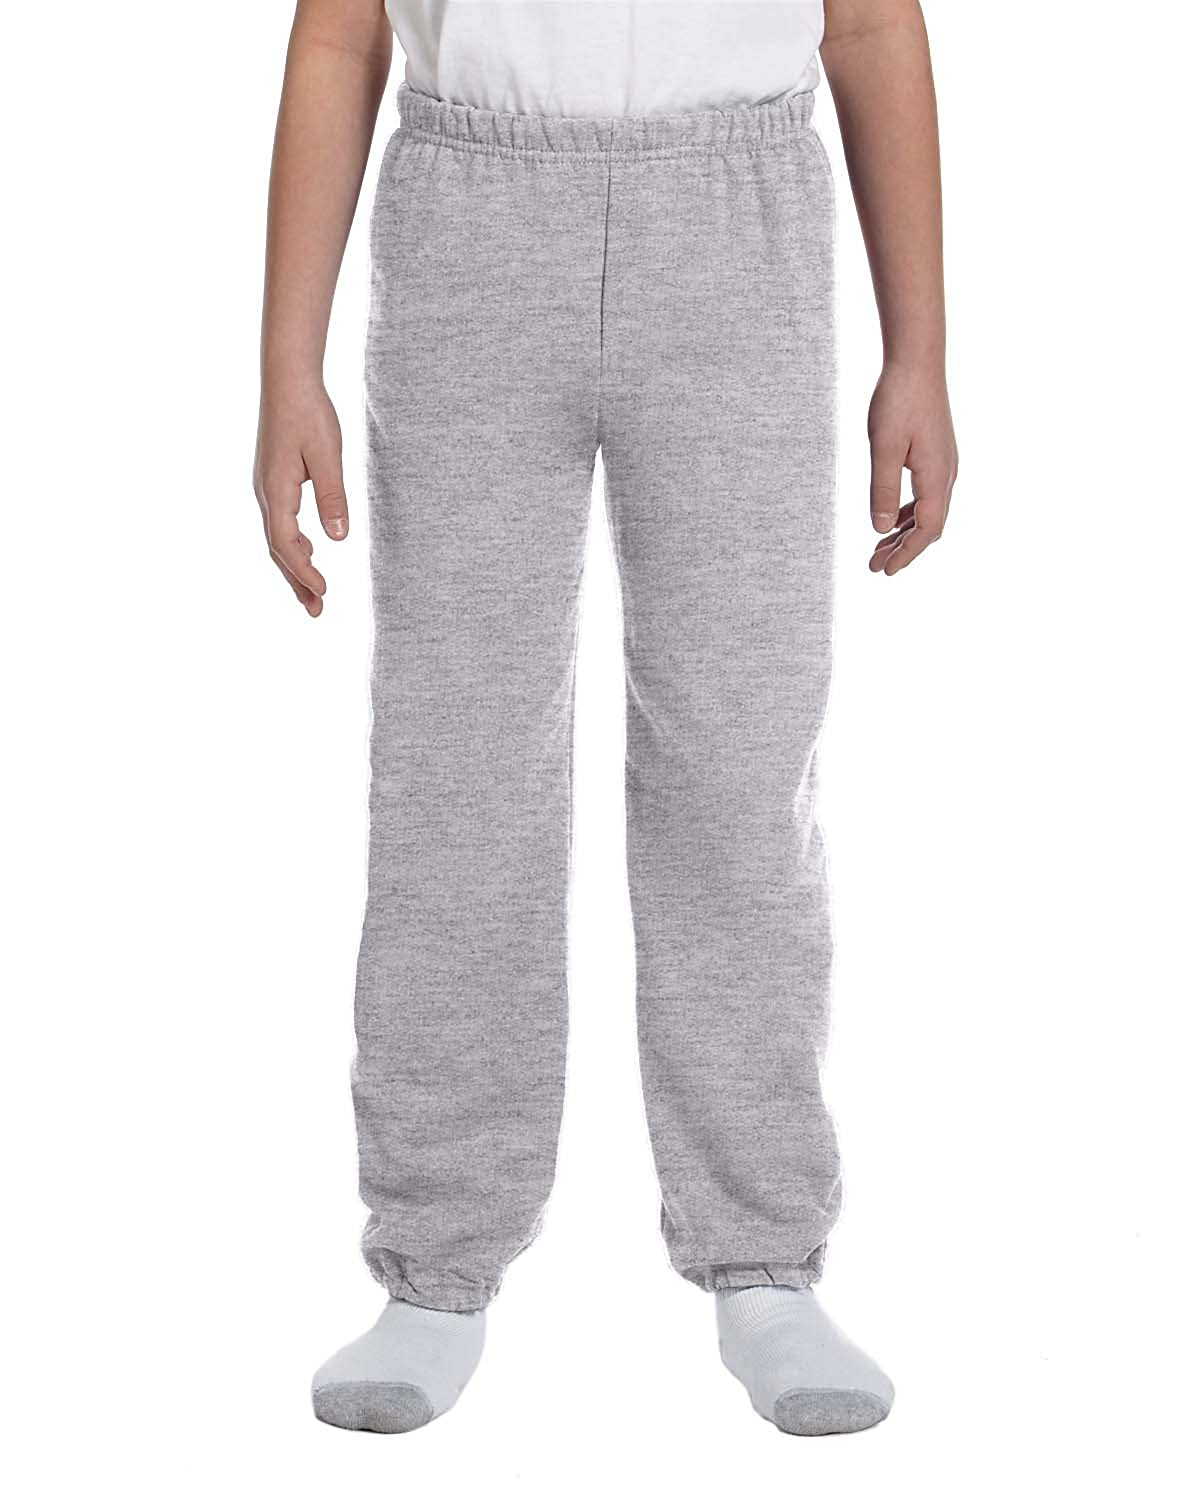 G182B Heavy Blend? 50//50 Sweatpants Gildan Boys 7.75 oz -SPORT GREY -S-12PK